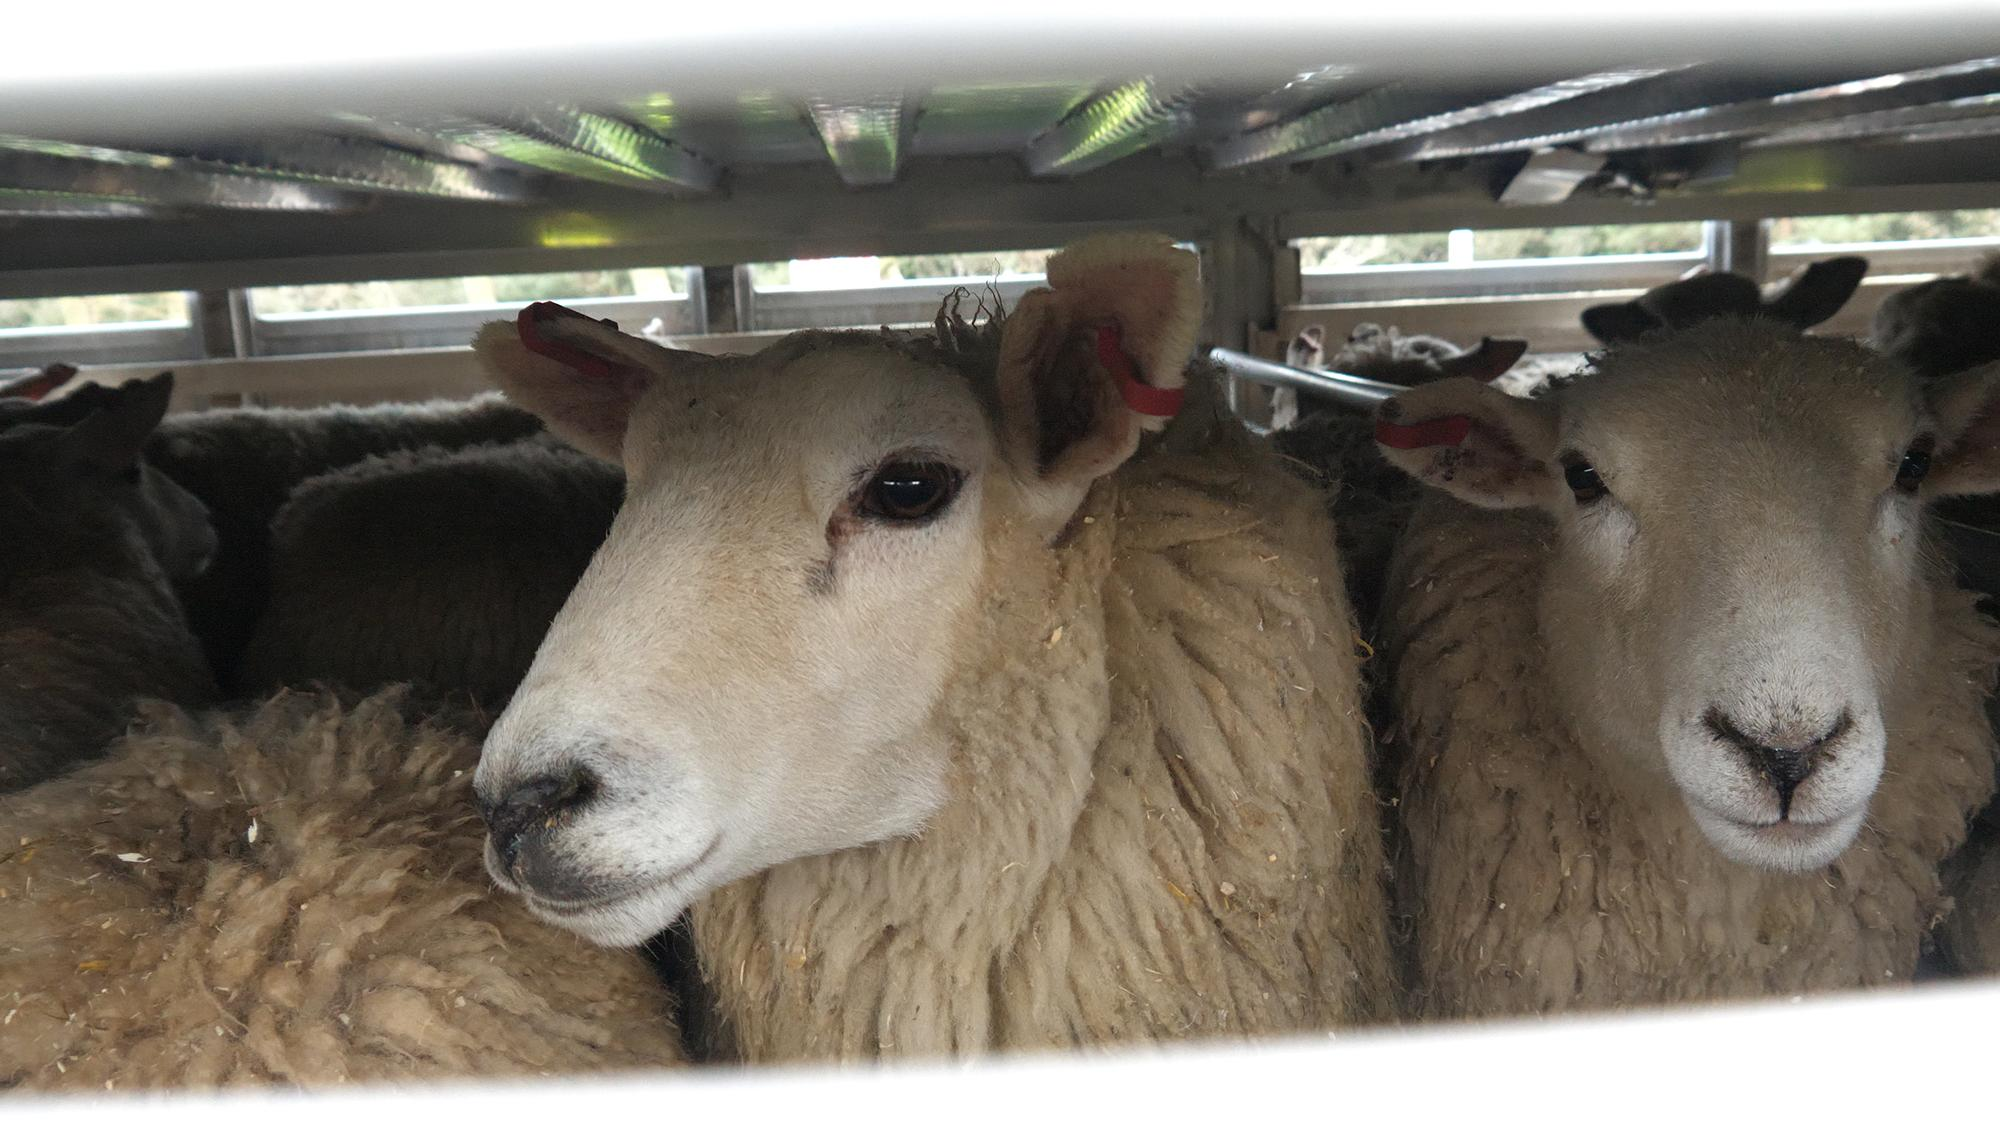 Sheep in live transport truck